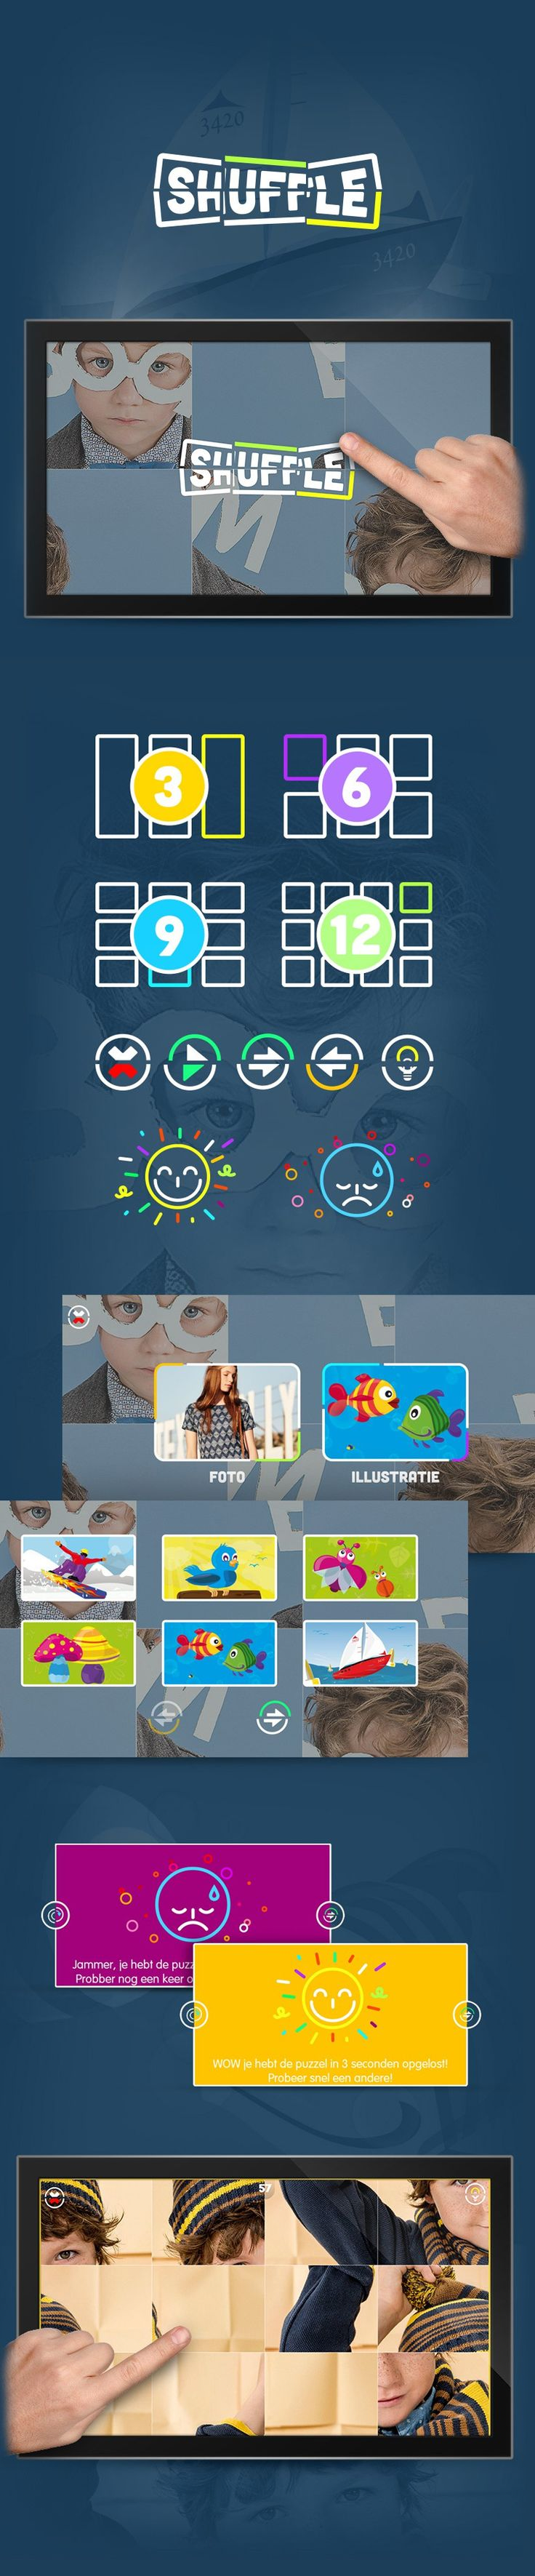 """Shuffle is a puzzle matching game built by Merixstudio for digital touch displays.  The player taps on the screen to choose between 4 difficulty levels. Photos or illustrations that appear are split into multiple pieces - the goal is to try to solve the puzzle within a given time. If the player gets stuck, she/he can push the """"Tip"""" button to preview full image. Developed in #HTML5/#Canvas, Shuffle can be played on desktop and digital signage touch devices."""